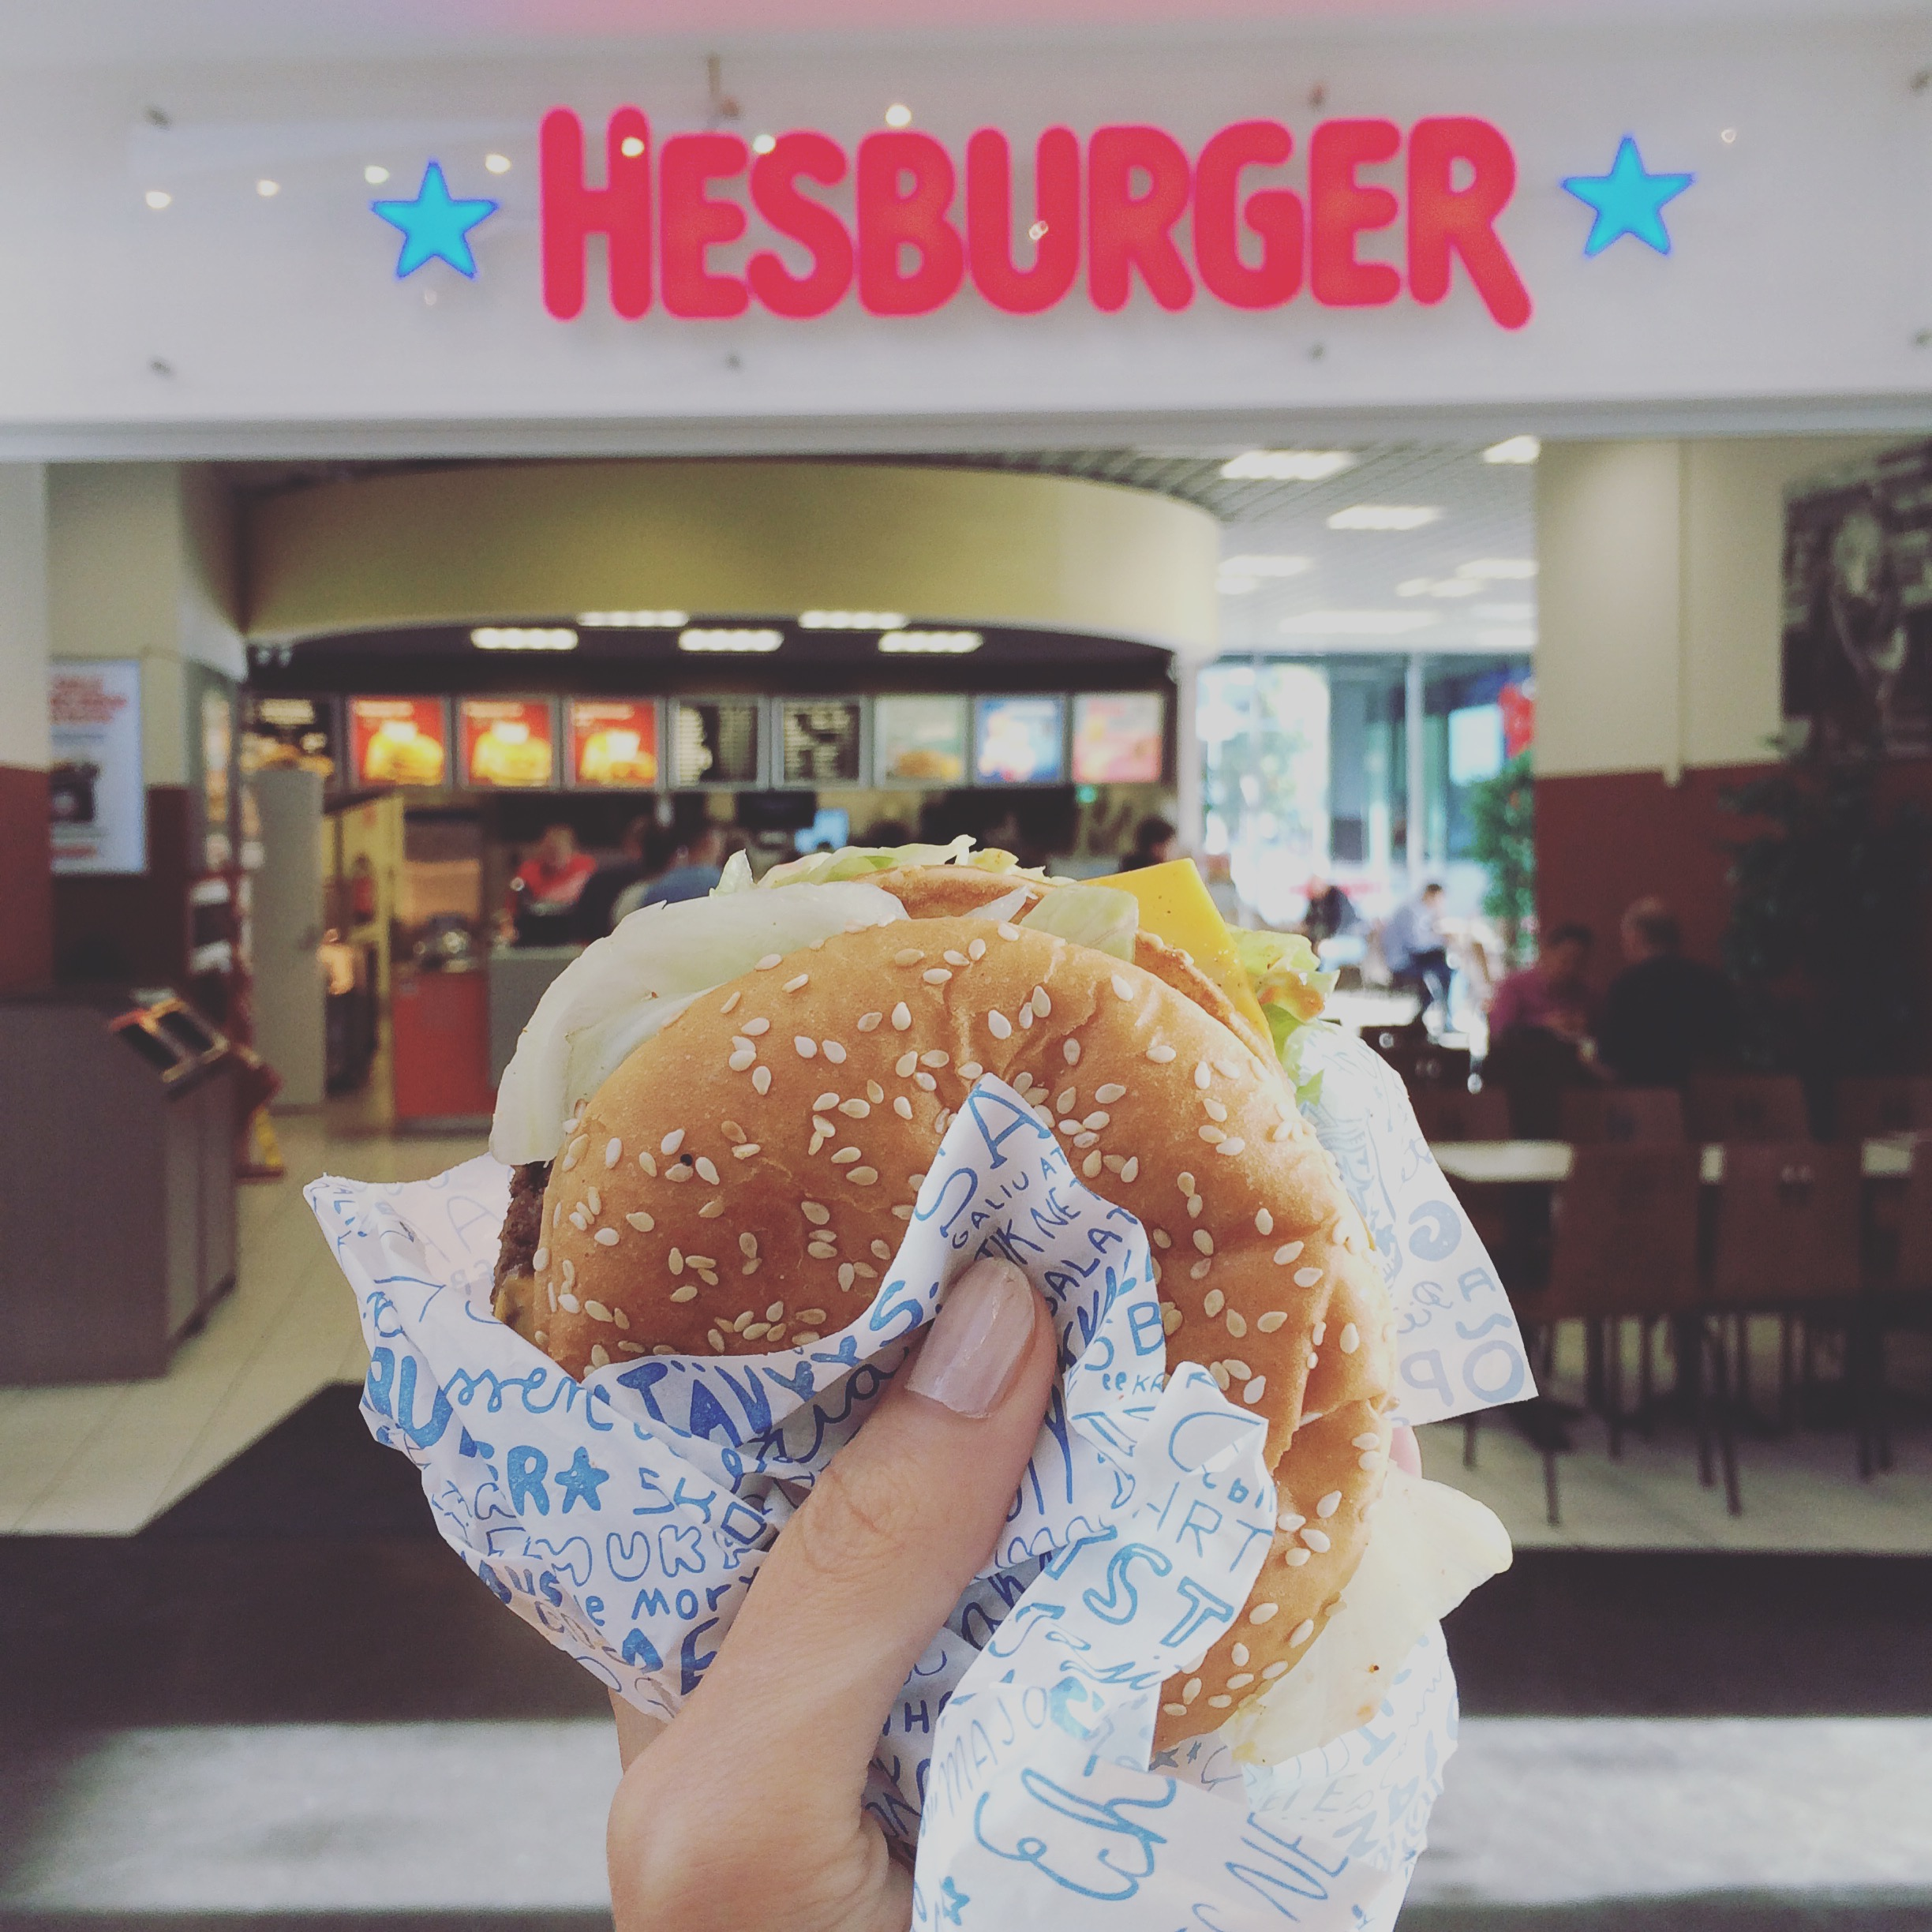 Best Burger Hesburger, Tallinn